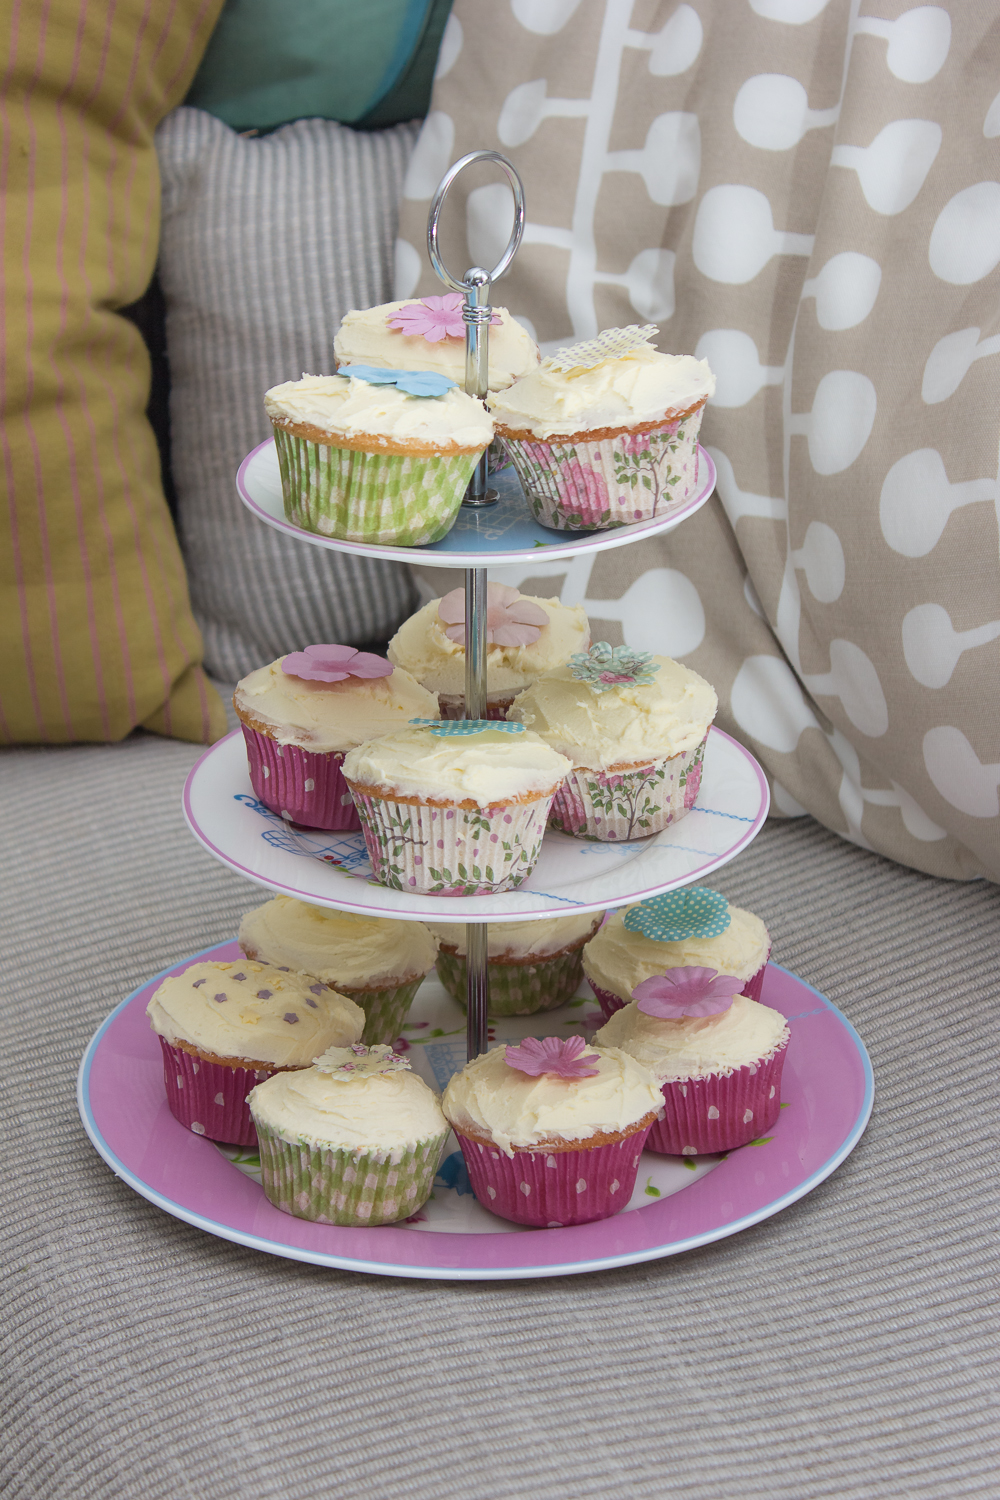 Beautiful cupcakes on a tier at a child's birthday party